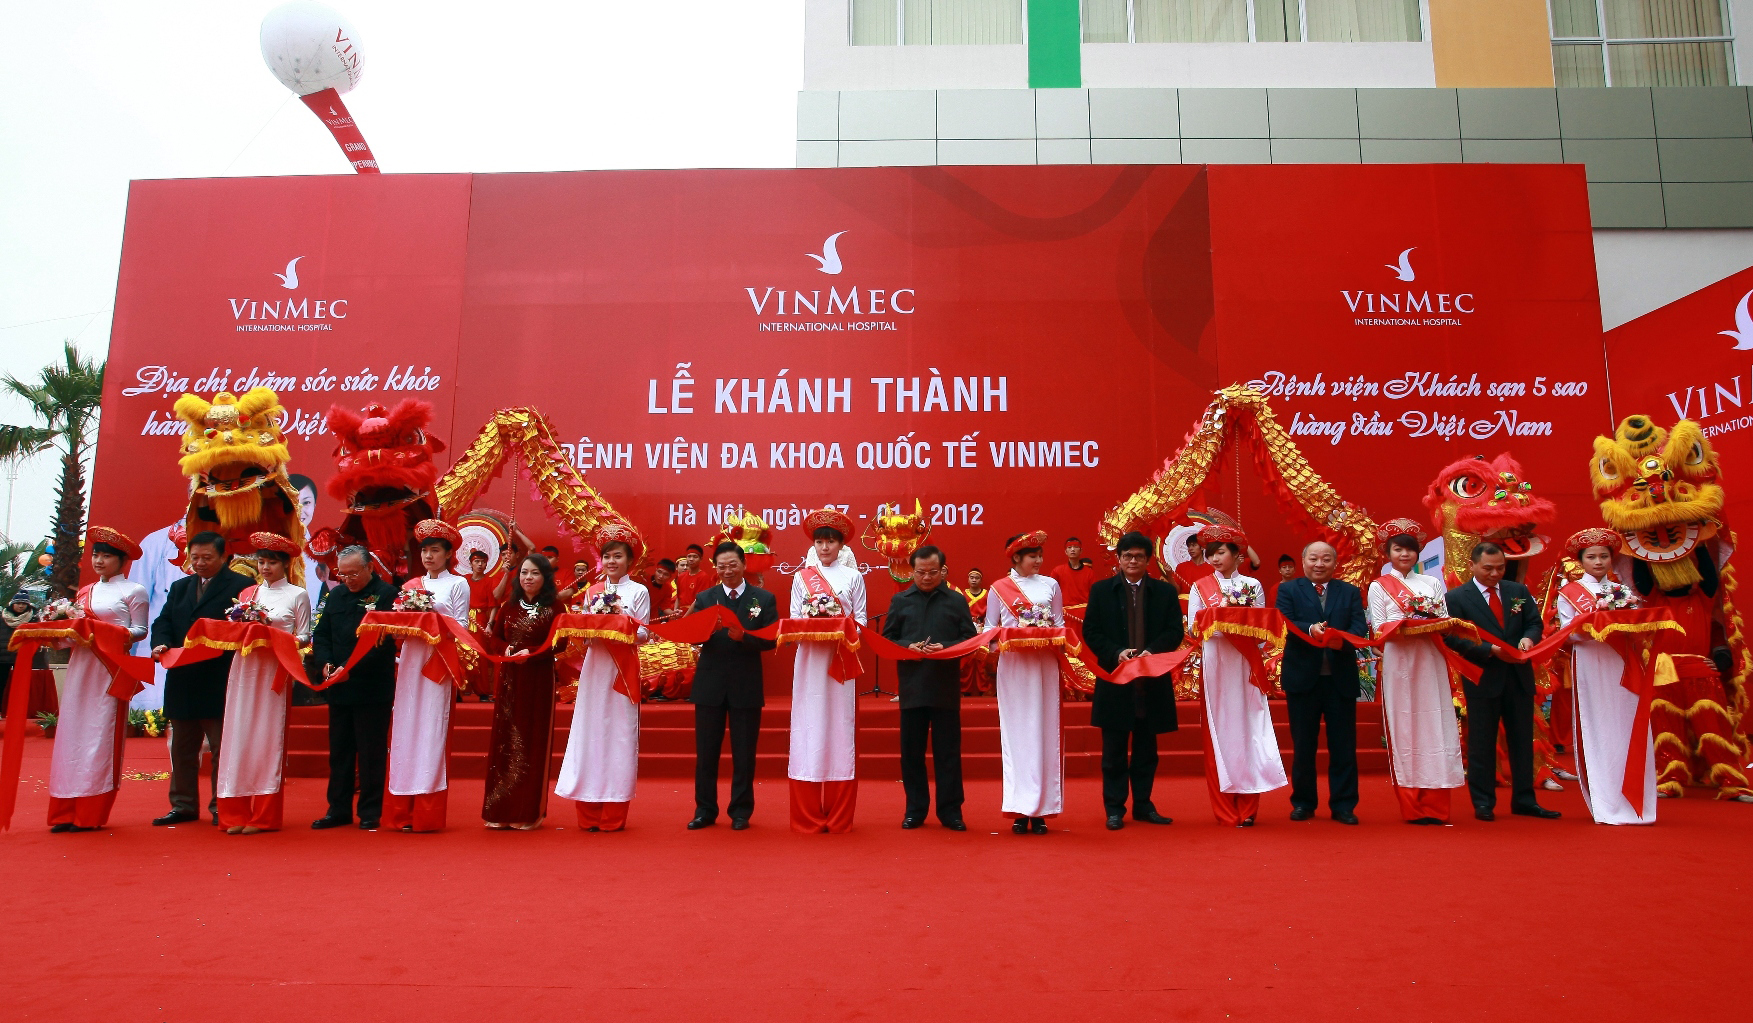 http://buidungmusic.com/wp-content/uploads/2014/11/le-khanh-thanh-1.jpg